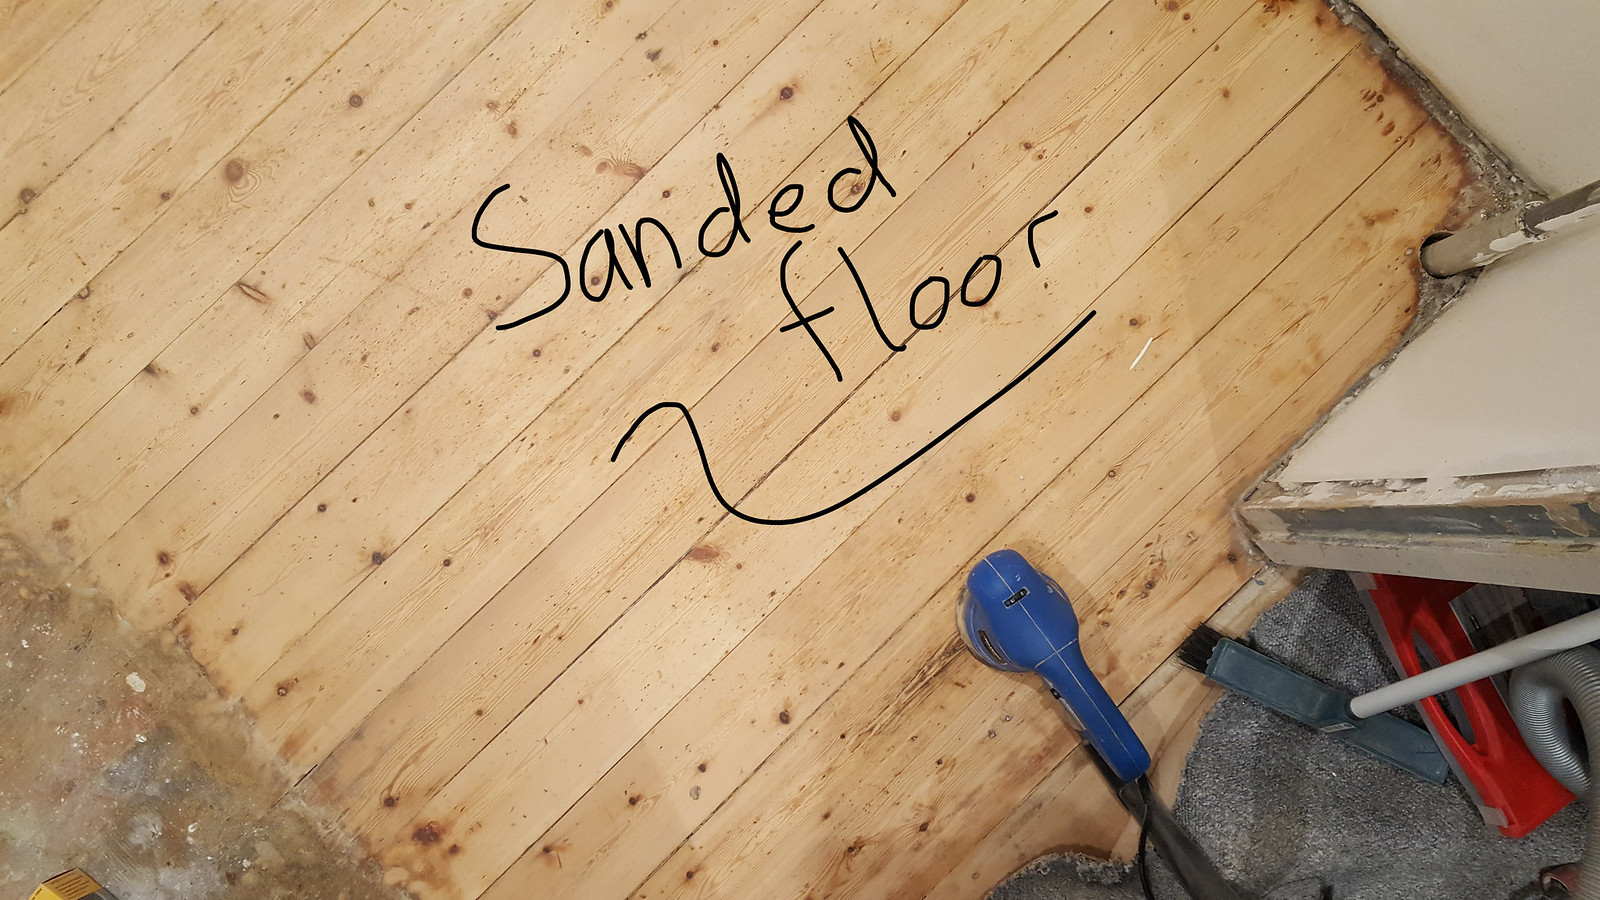 Cleaning and Treating the Floor